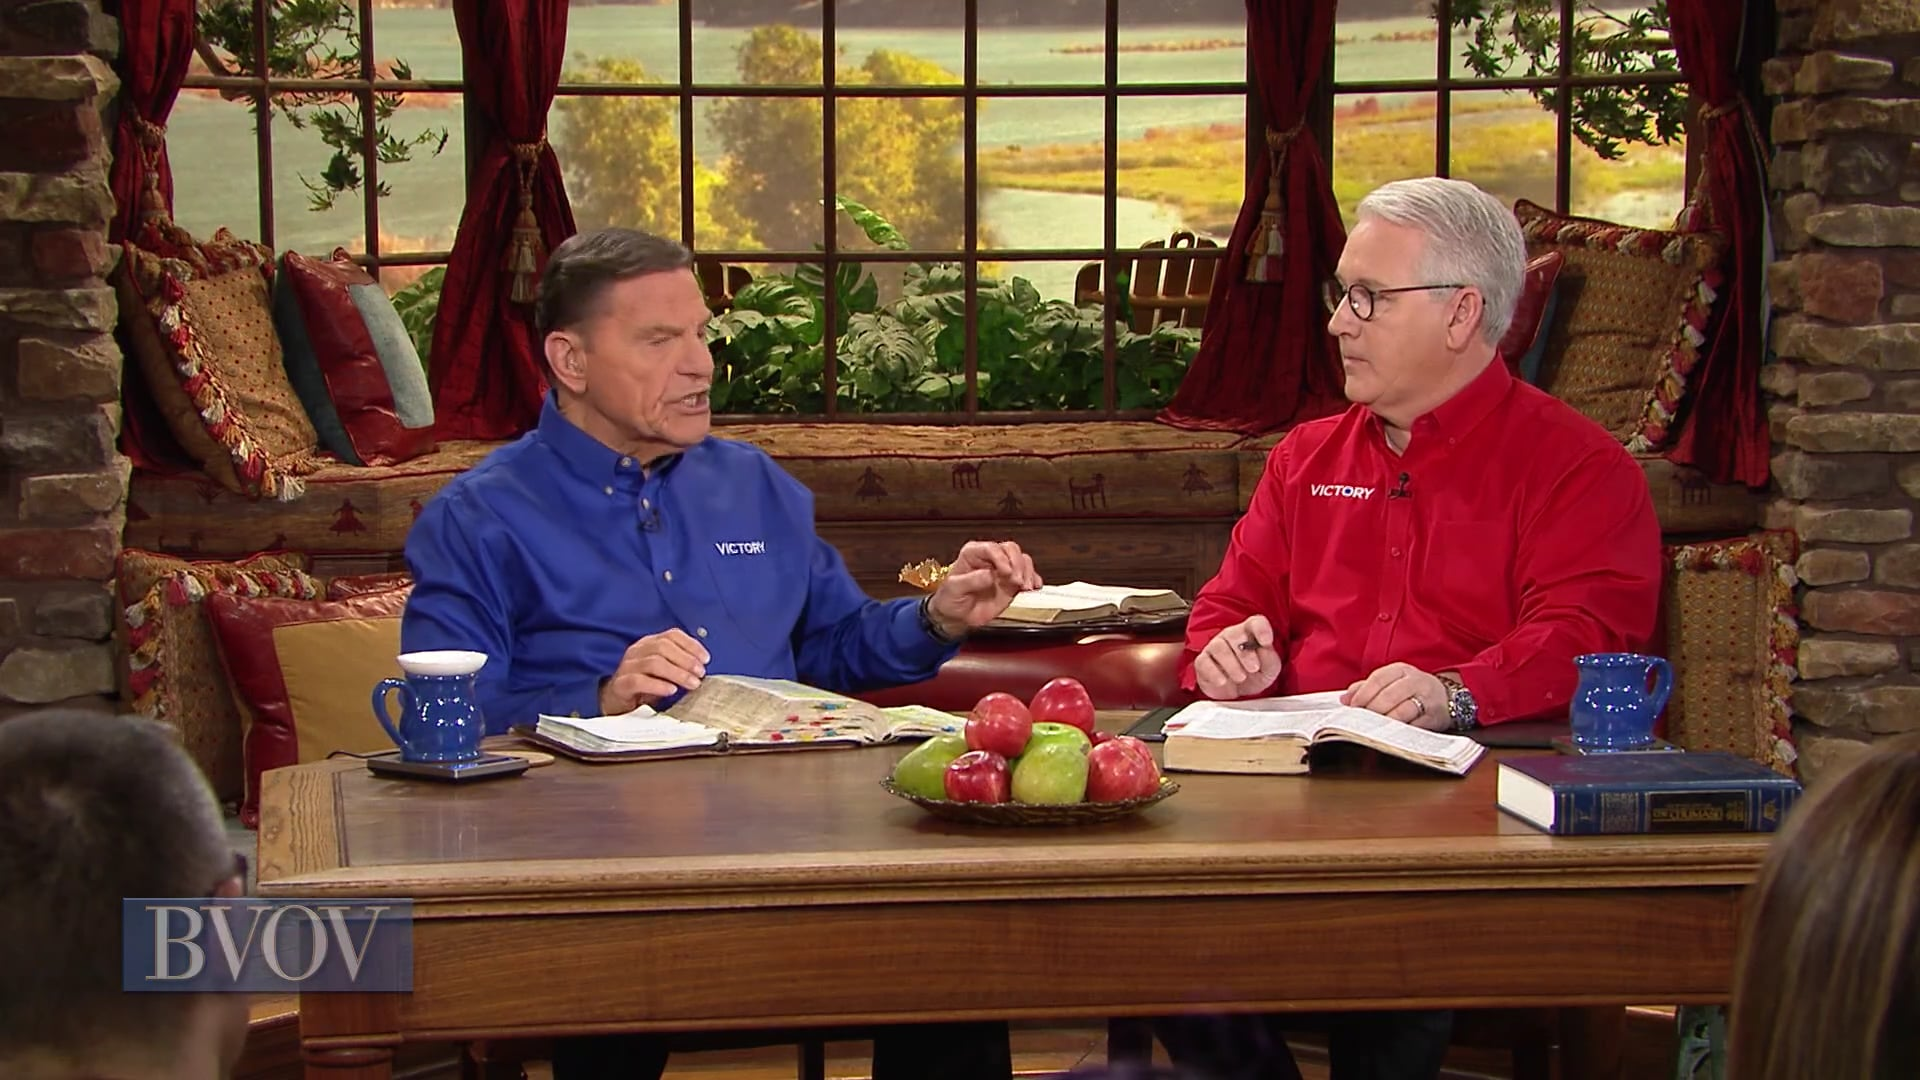 Why does God delay judgment? Join Kenneth Copeland and Professor Greg Stephens on Believer's Voice of Victory as they discuss the patterns in events throughout different times in the Bible. Learn the importance of understanding biblical timing and how you can be instrumental in fulfilling the will and plan of God.